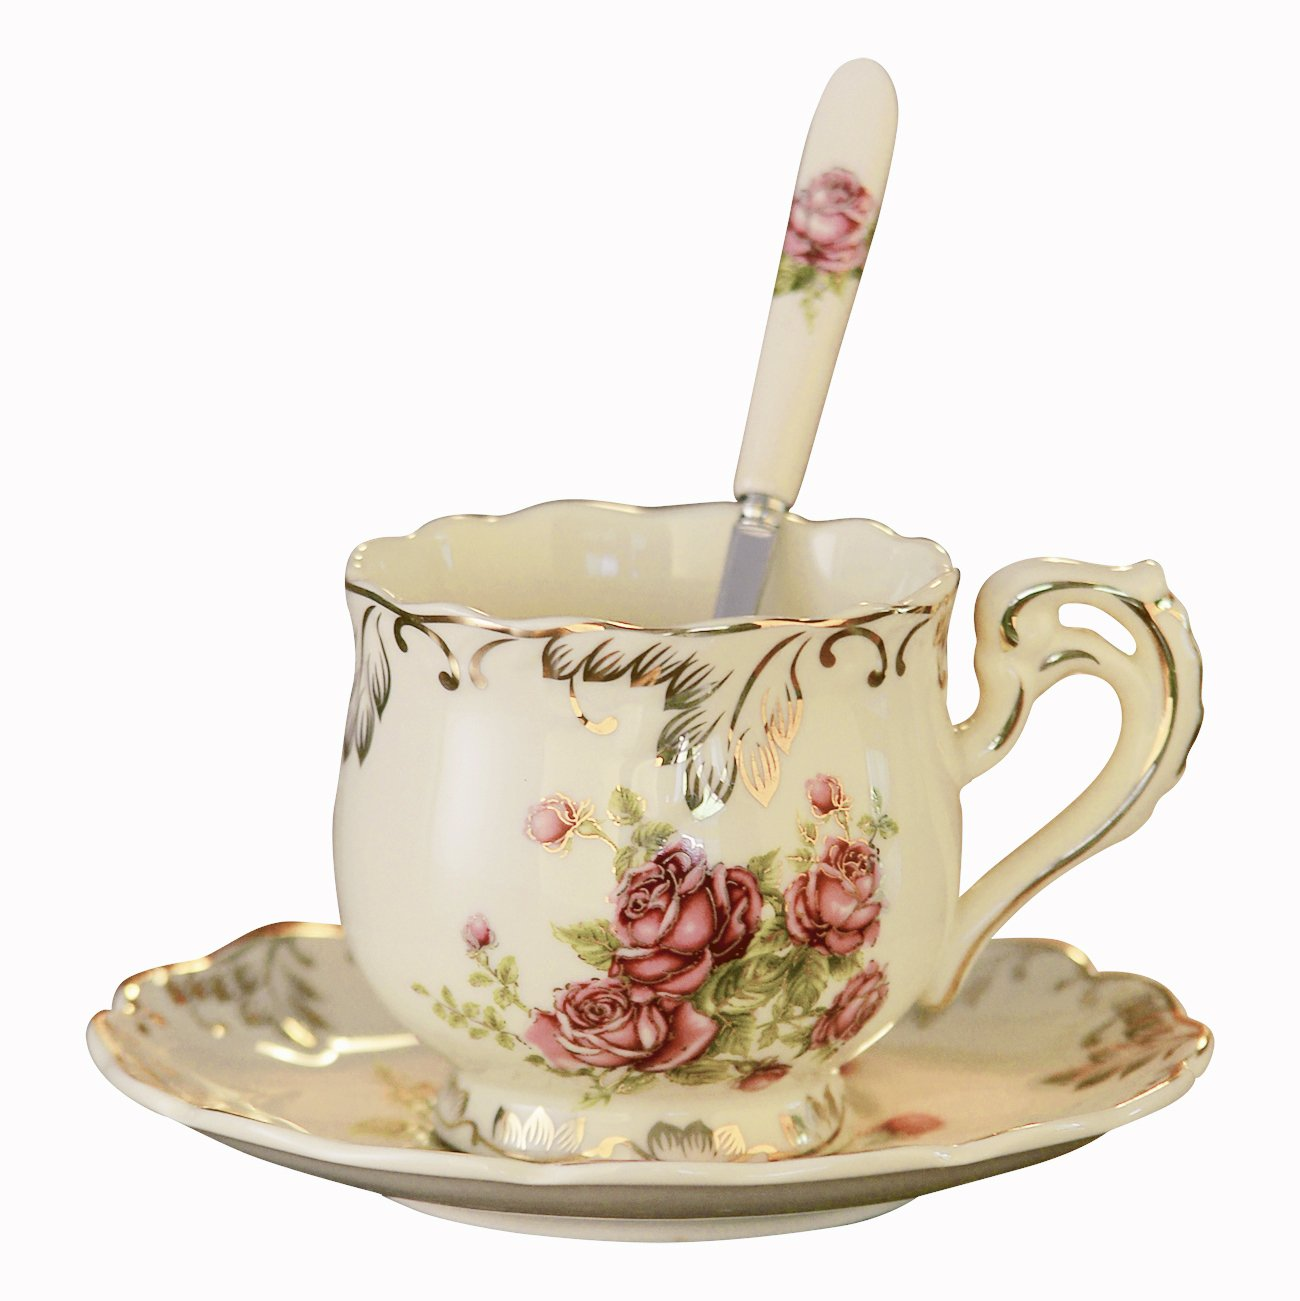 YOLIFE European Red Rose Pattern Ivory Ceramic Tea Cup and Saucer with Spoon,Vintage Single Cup with Saucer